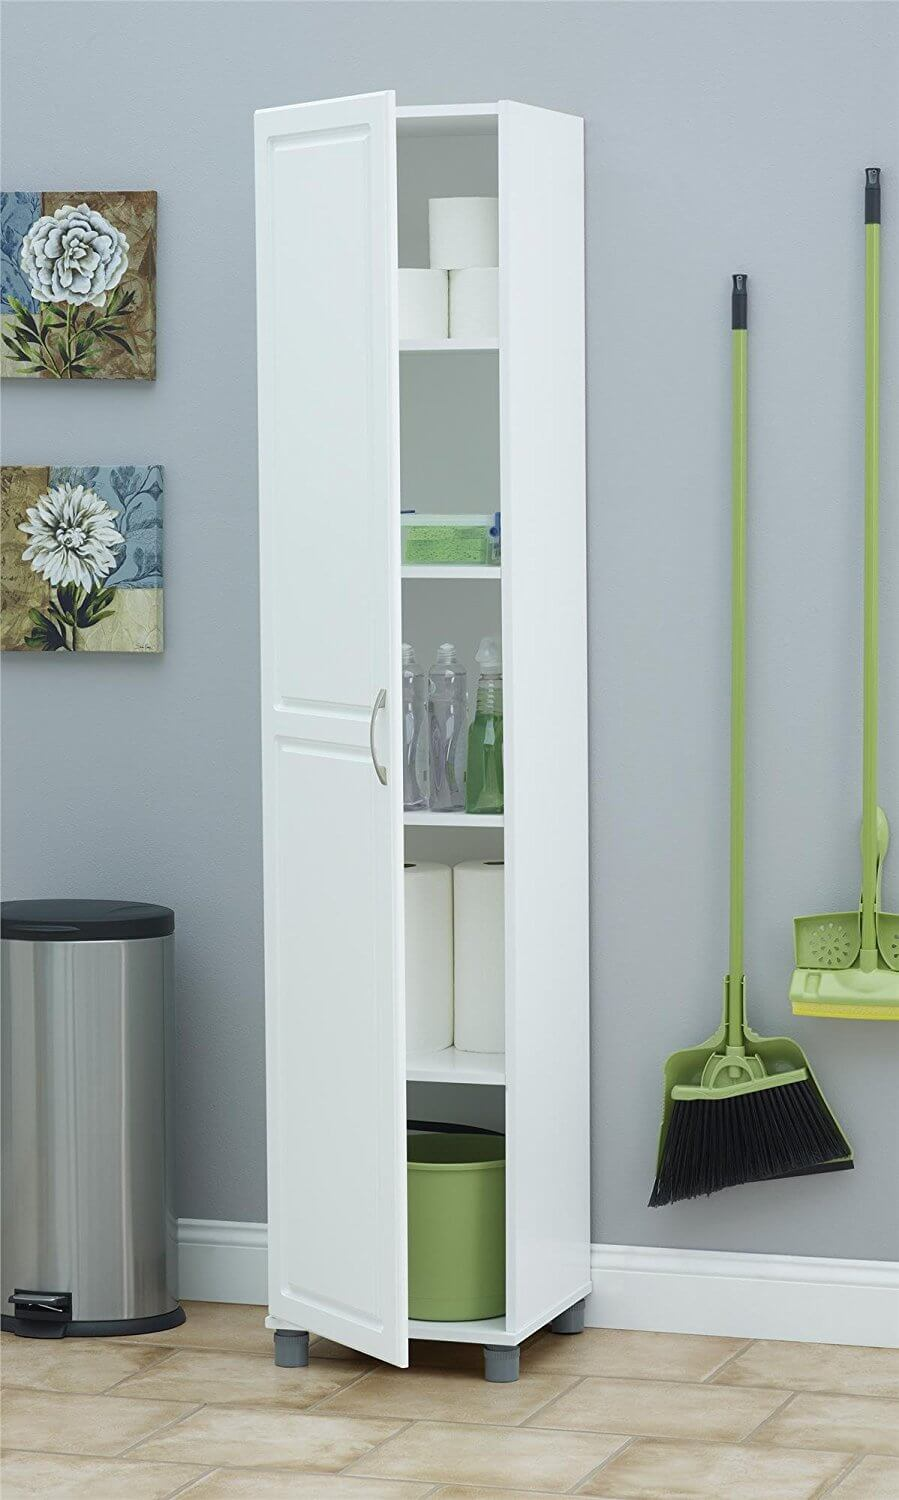 Homebnc & 26 Best Bathroom Storage Cabinet Ideas for 2019